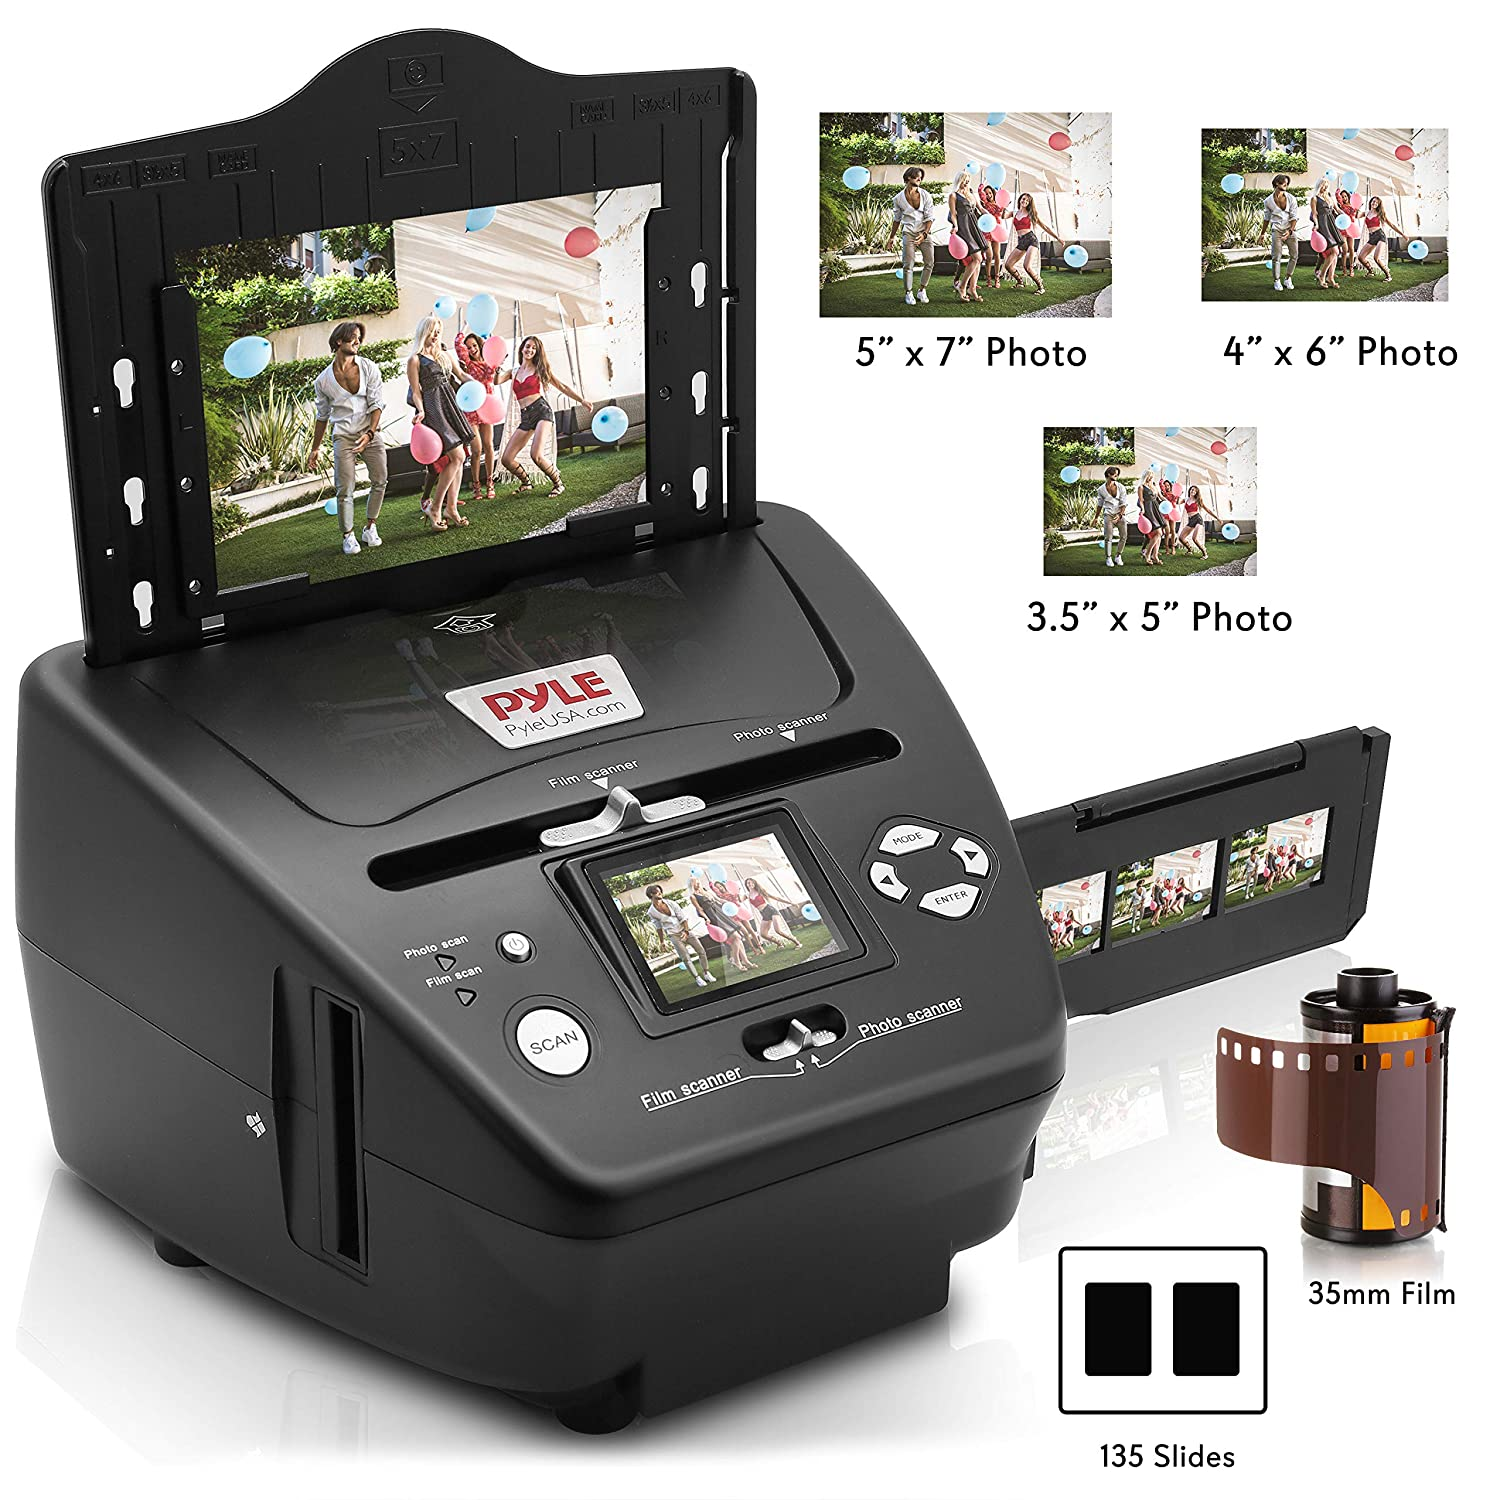 Digital 3-in-1 Photo, Slide and Film Scanner - Convert 35mm Film Negatives  & Slides - With HD 5 1 MP - Digital LCD Screen, Easy to Use